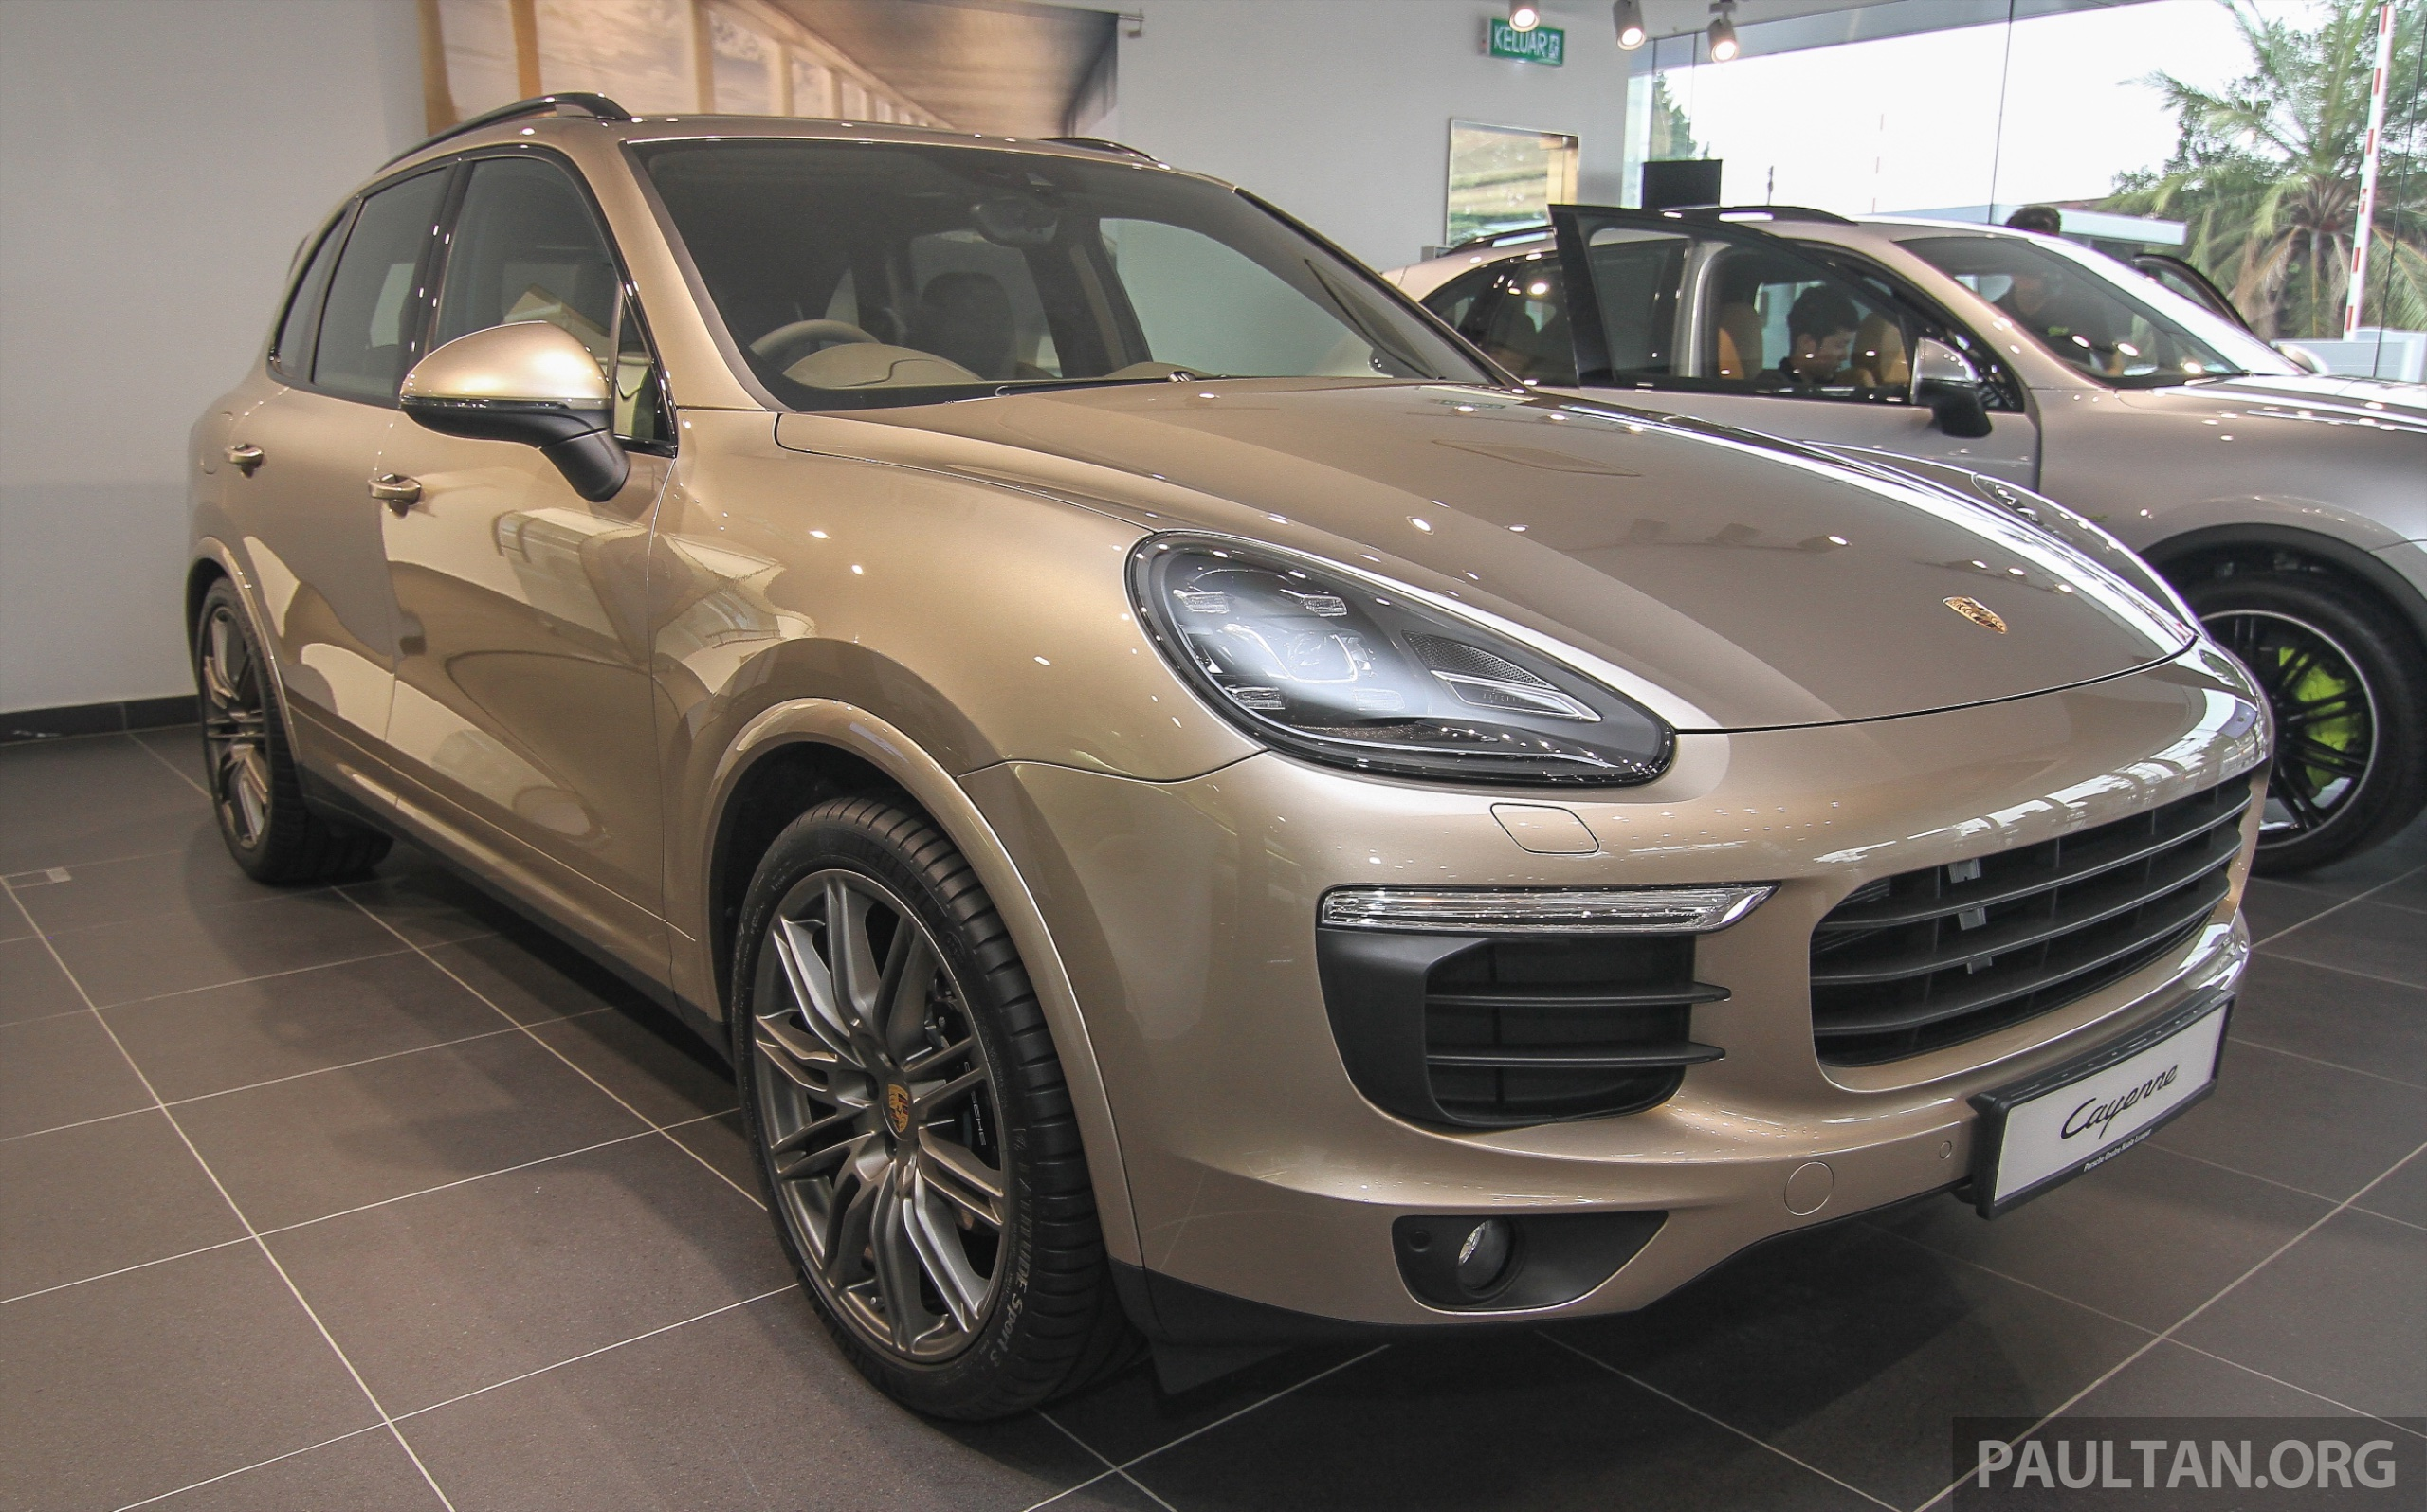 2015 porsche 911 targa 4s cayenne gts facelift introduced in malaysia order books now open. Black Bedroom Furniture Sets. Home Design Ideas